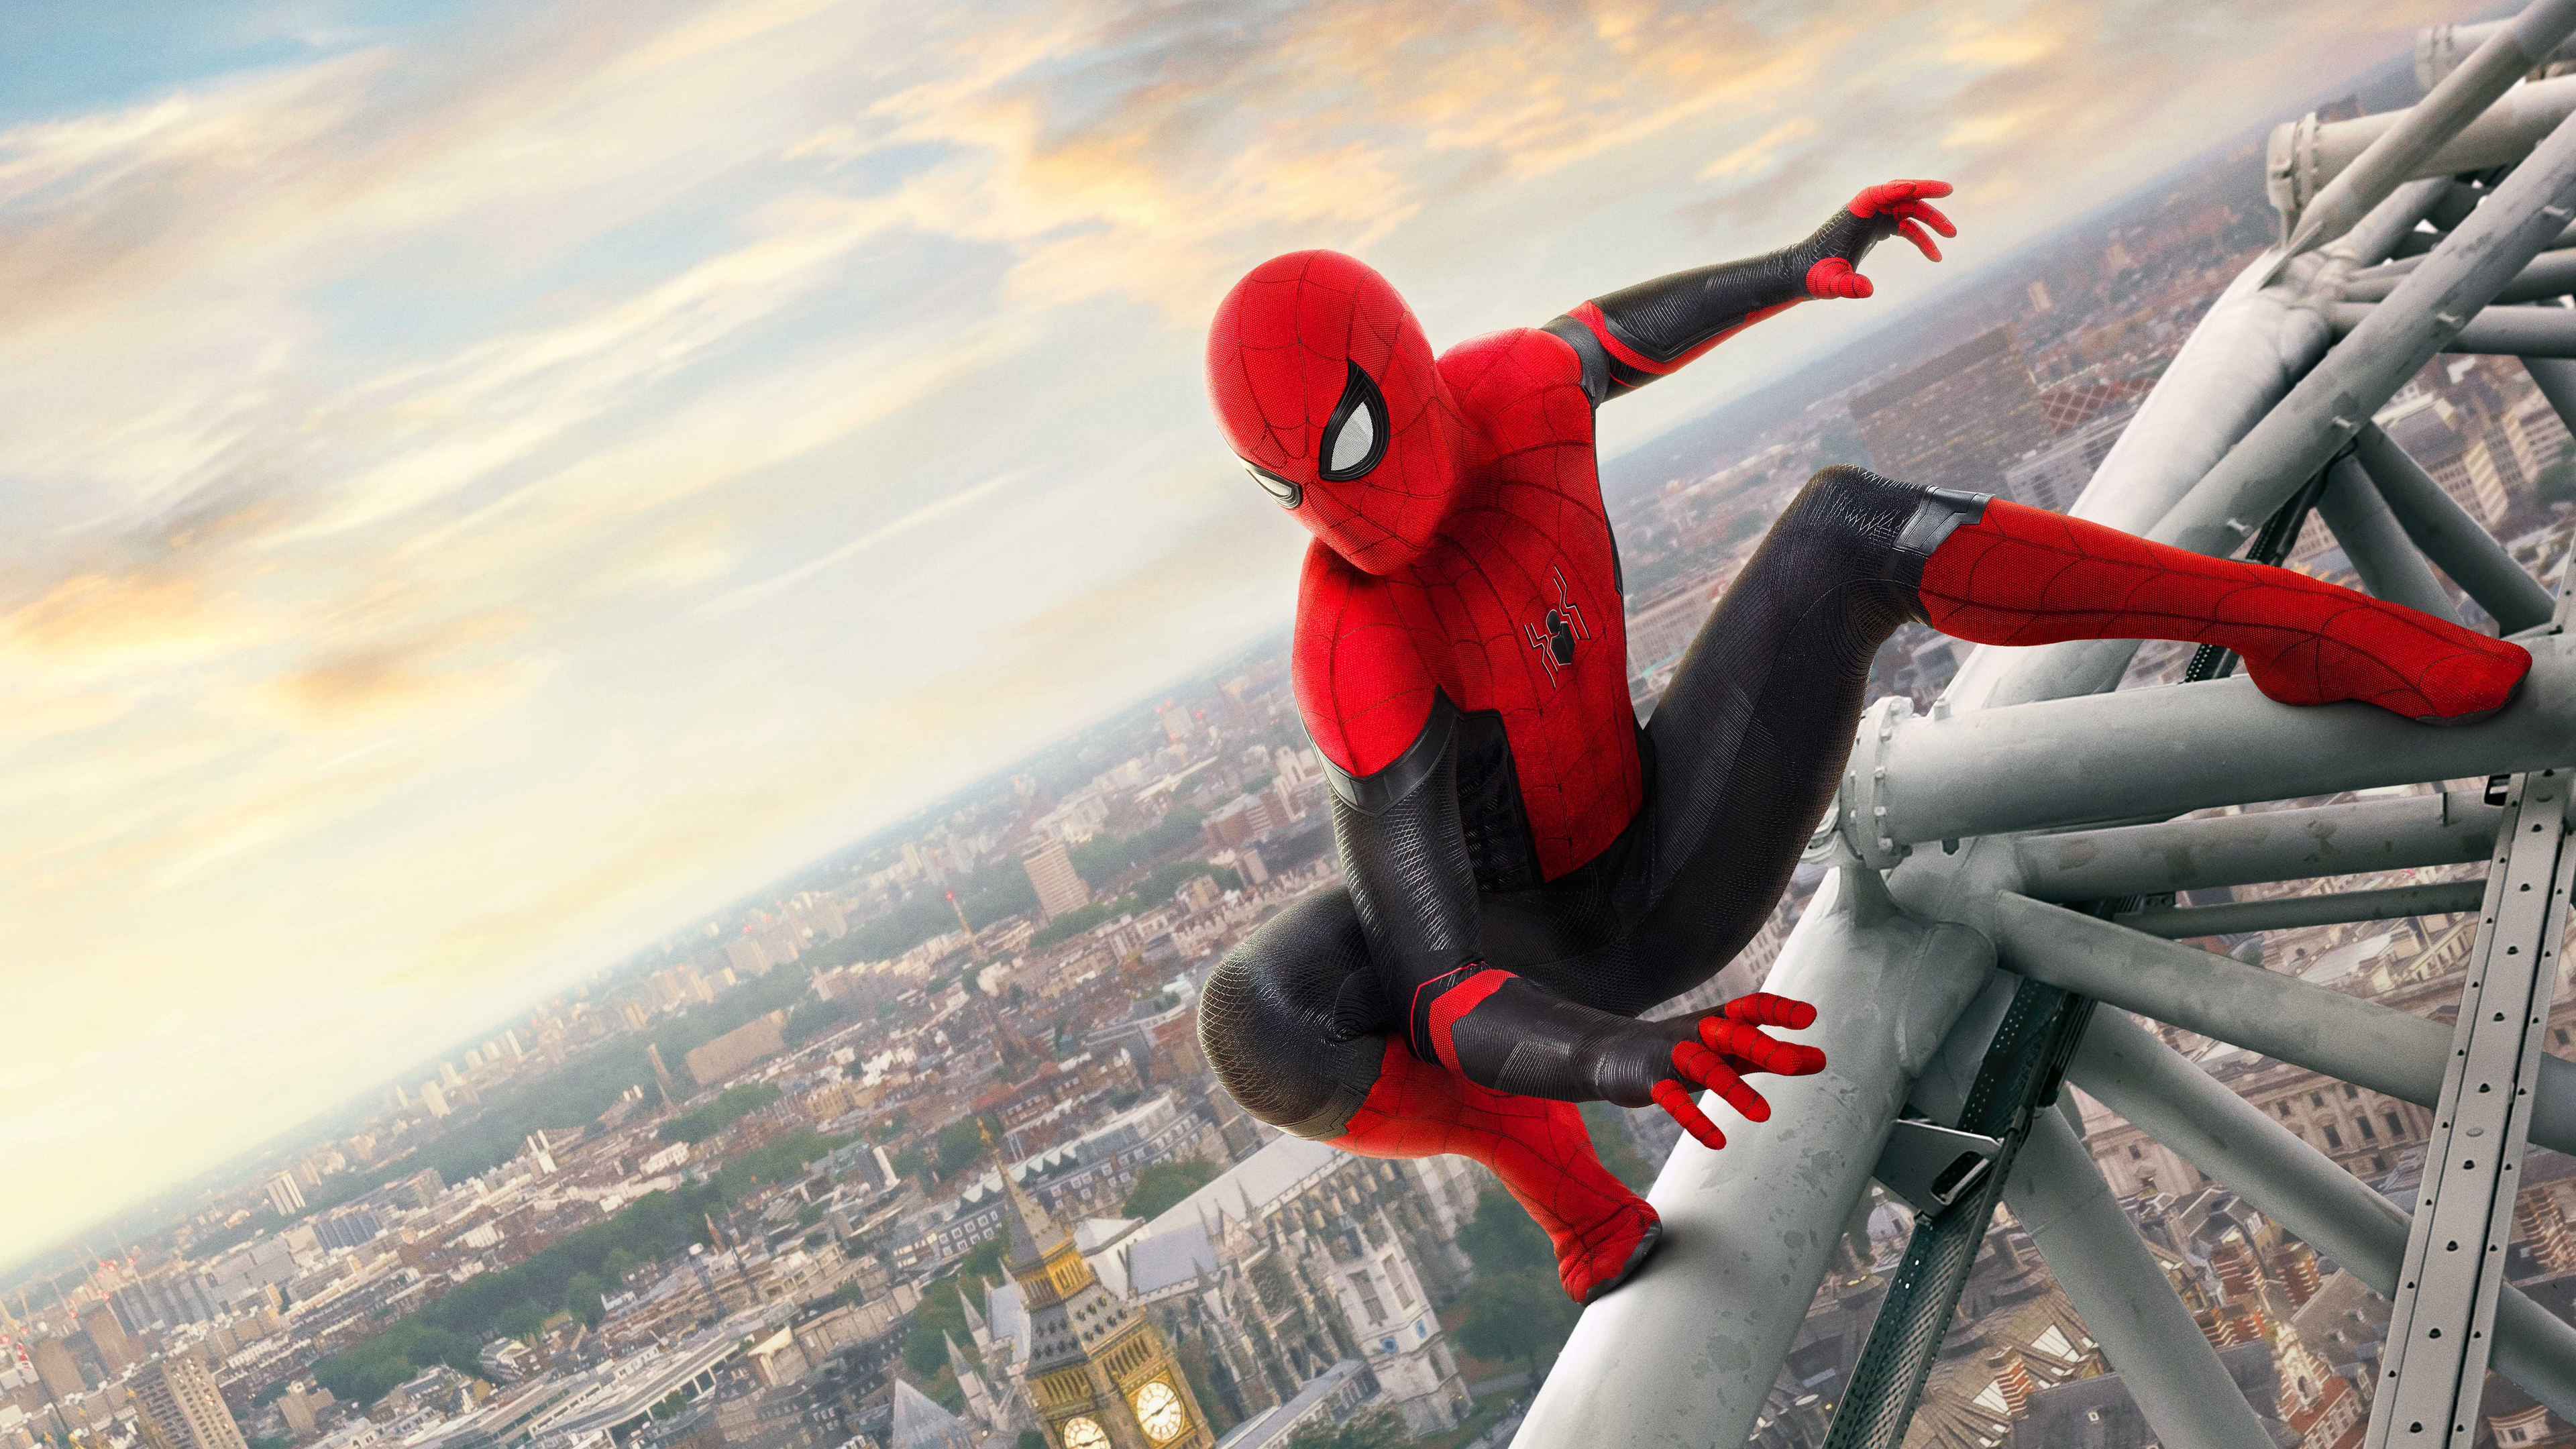 spider man far from home 2019 4k 1555209063 - Spider Man Far From Home 2019 4k - tom holland wallpapers, superheroes wallpapers, spiderman wallpapers, spiderman far from home wallpapers, movies wallpapers, hd-wallpapers, 4k-wallpapers, 2019 movies wallpapers